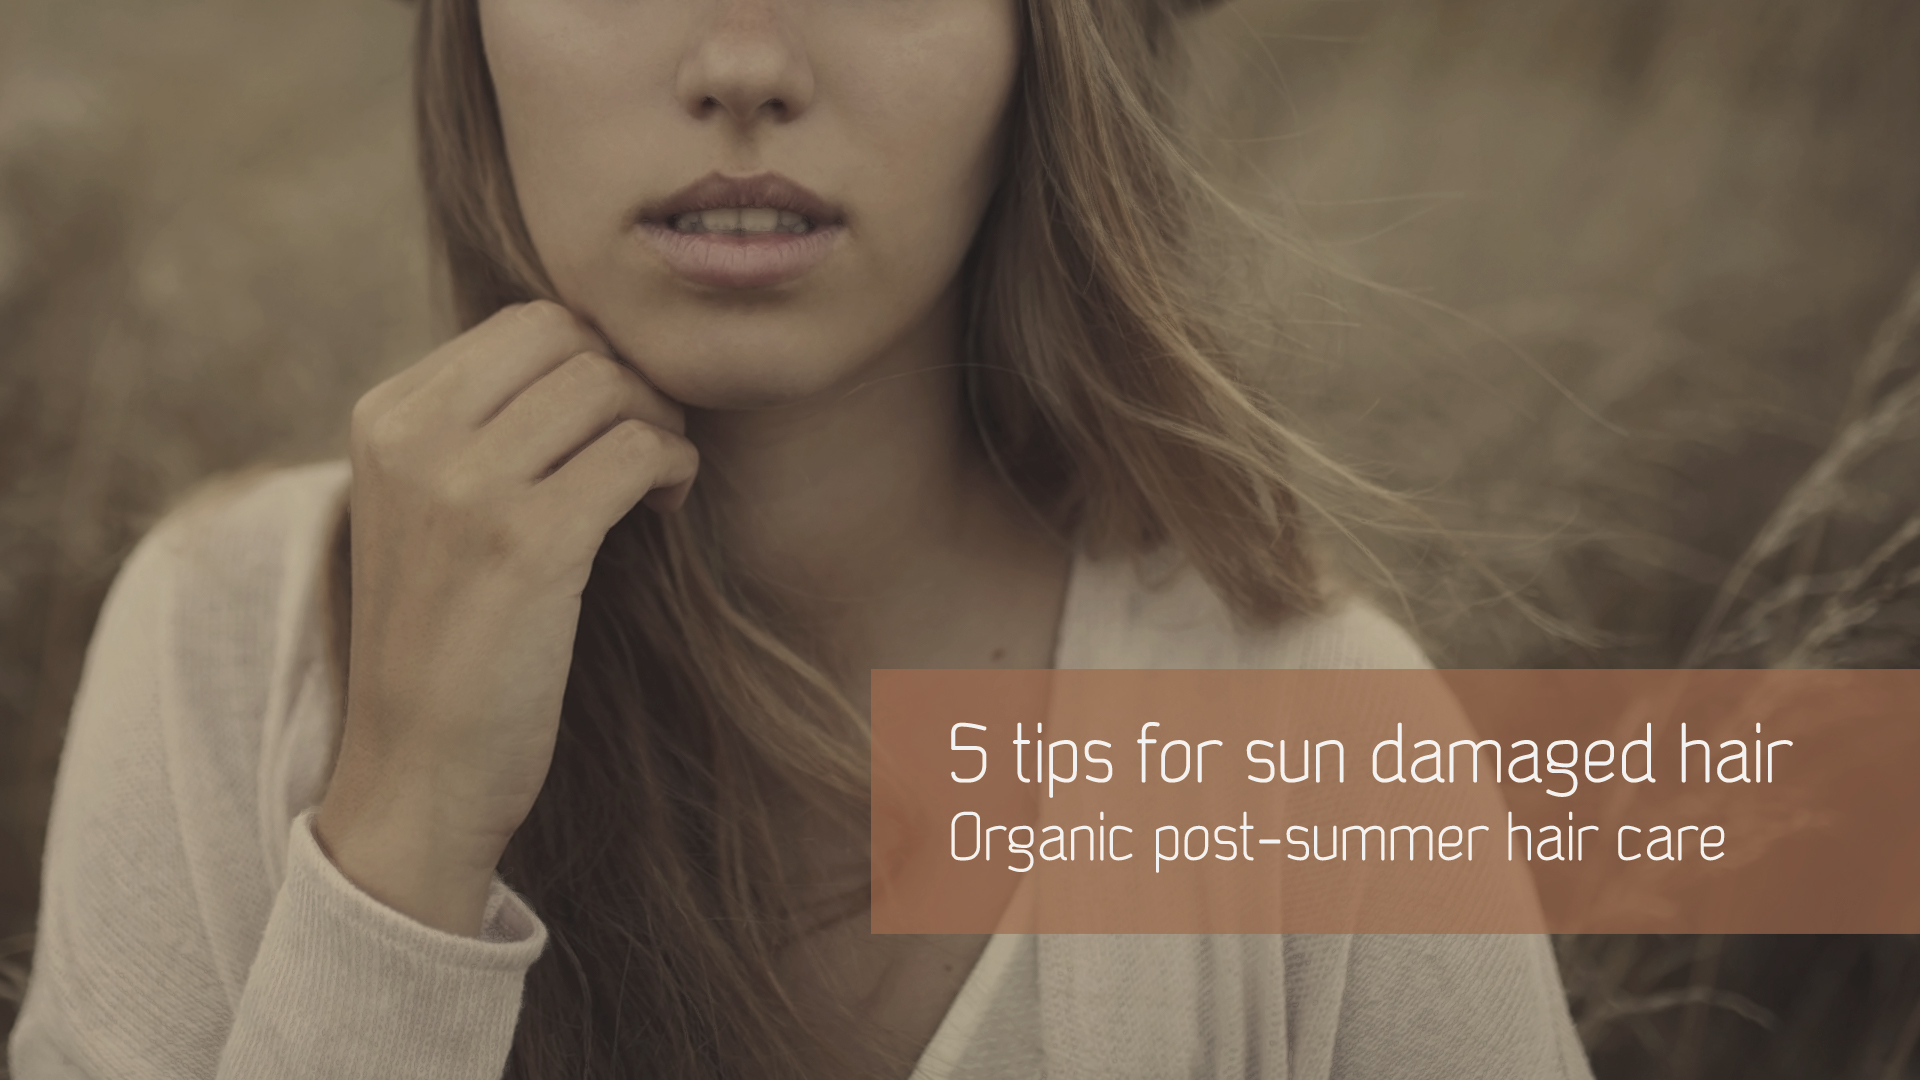 Best natural tips & products for sun damaged hair